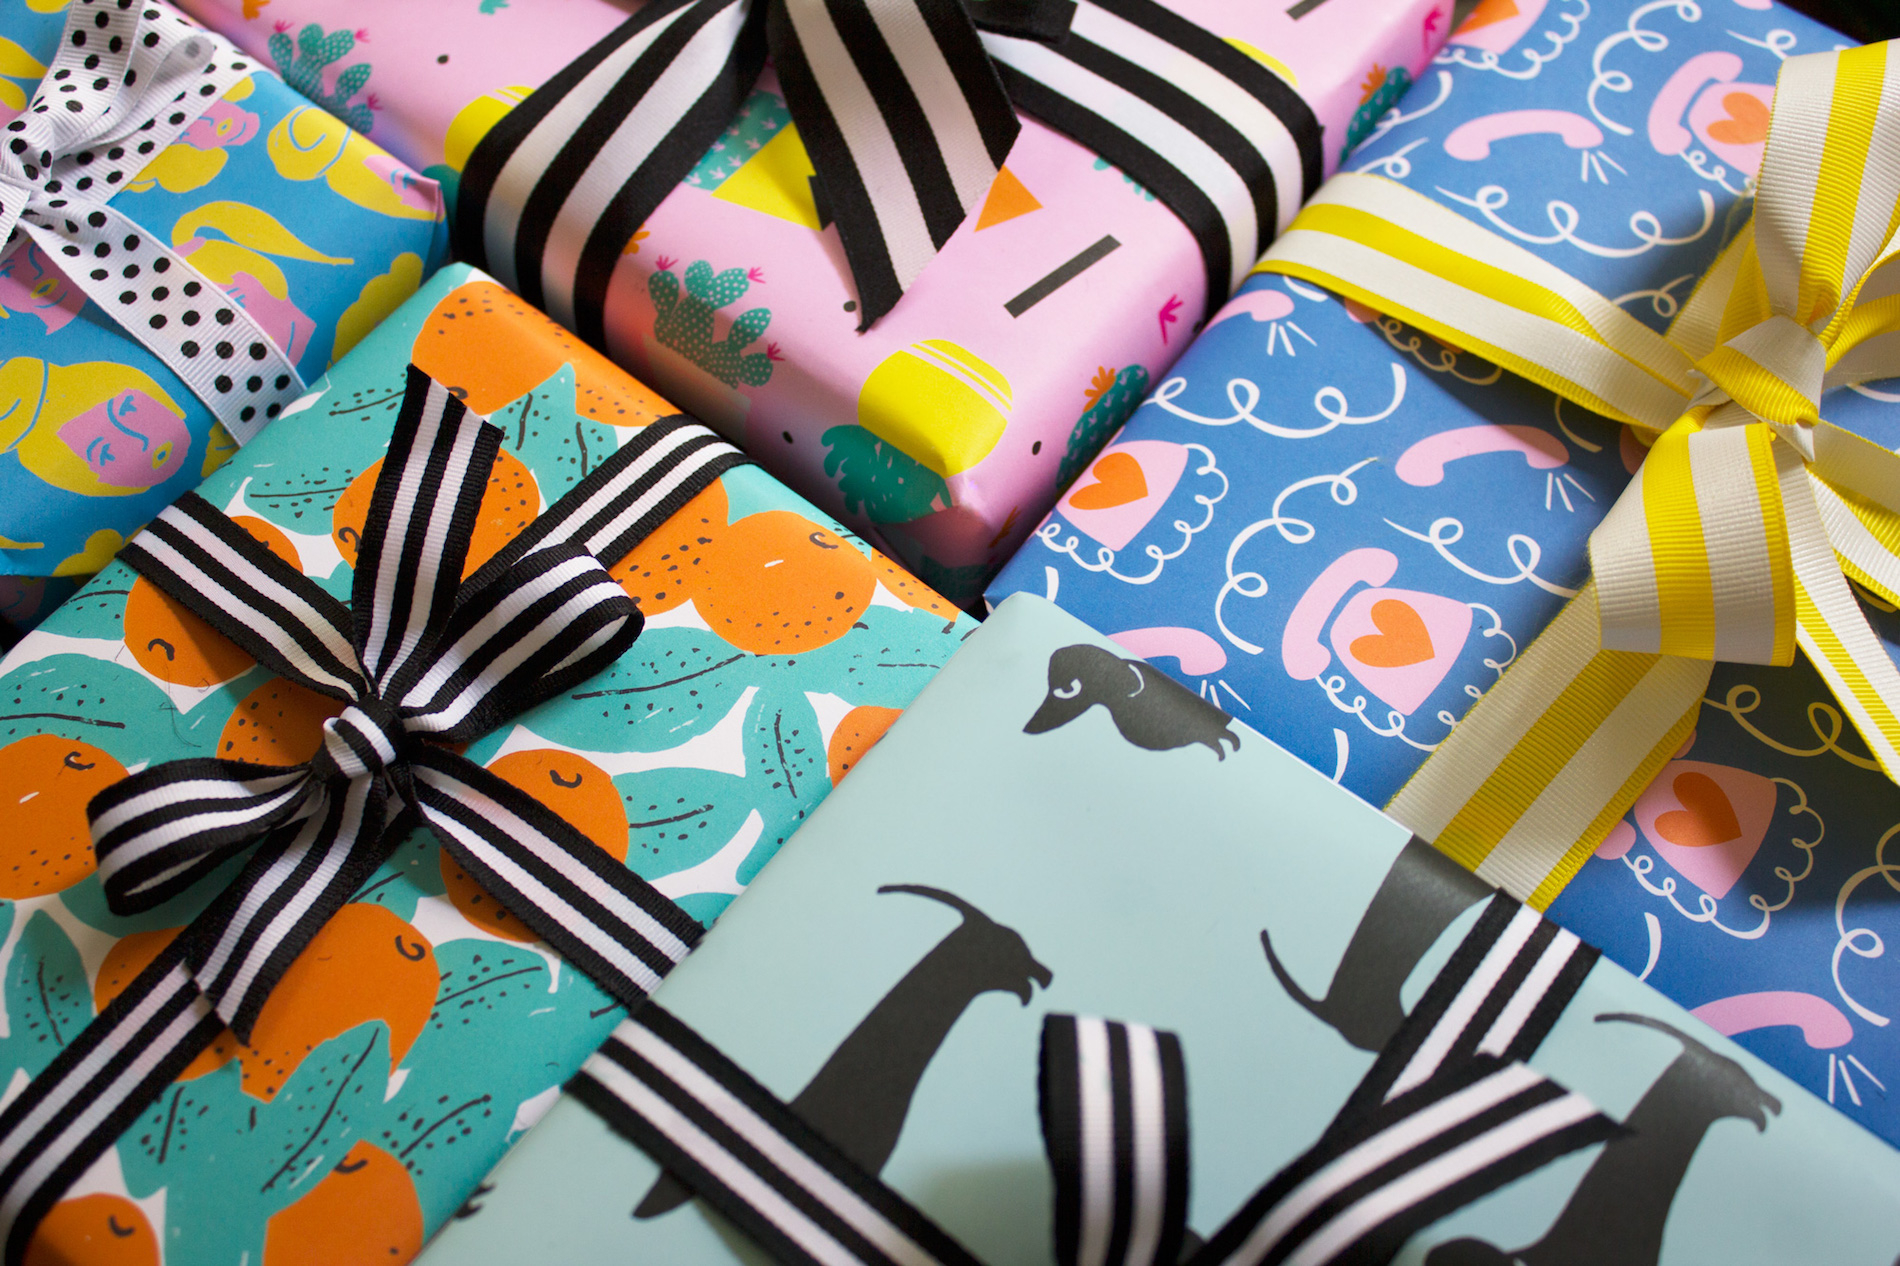 Gift-wrapped parcels